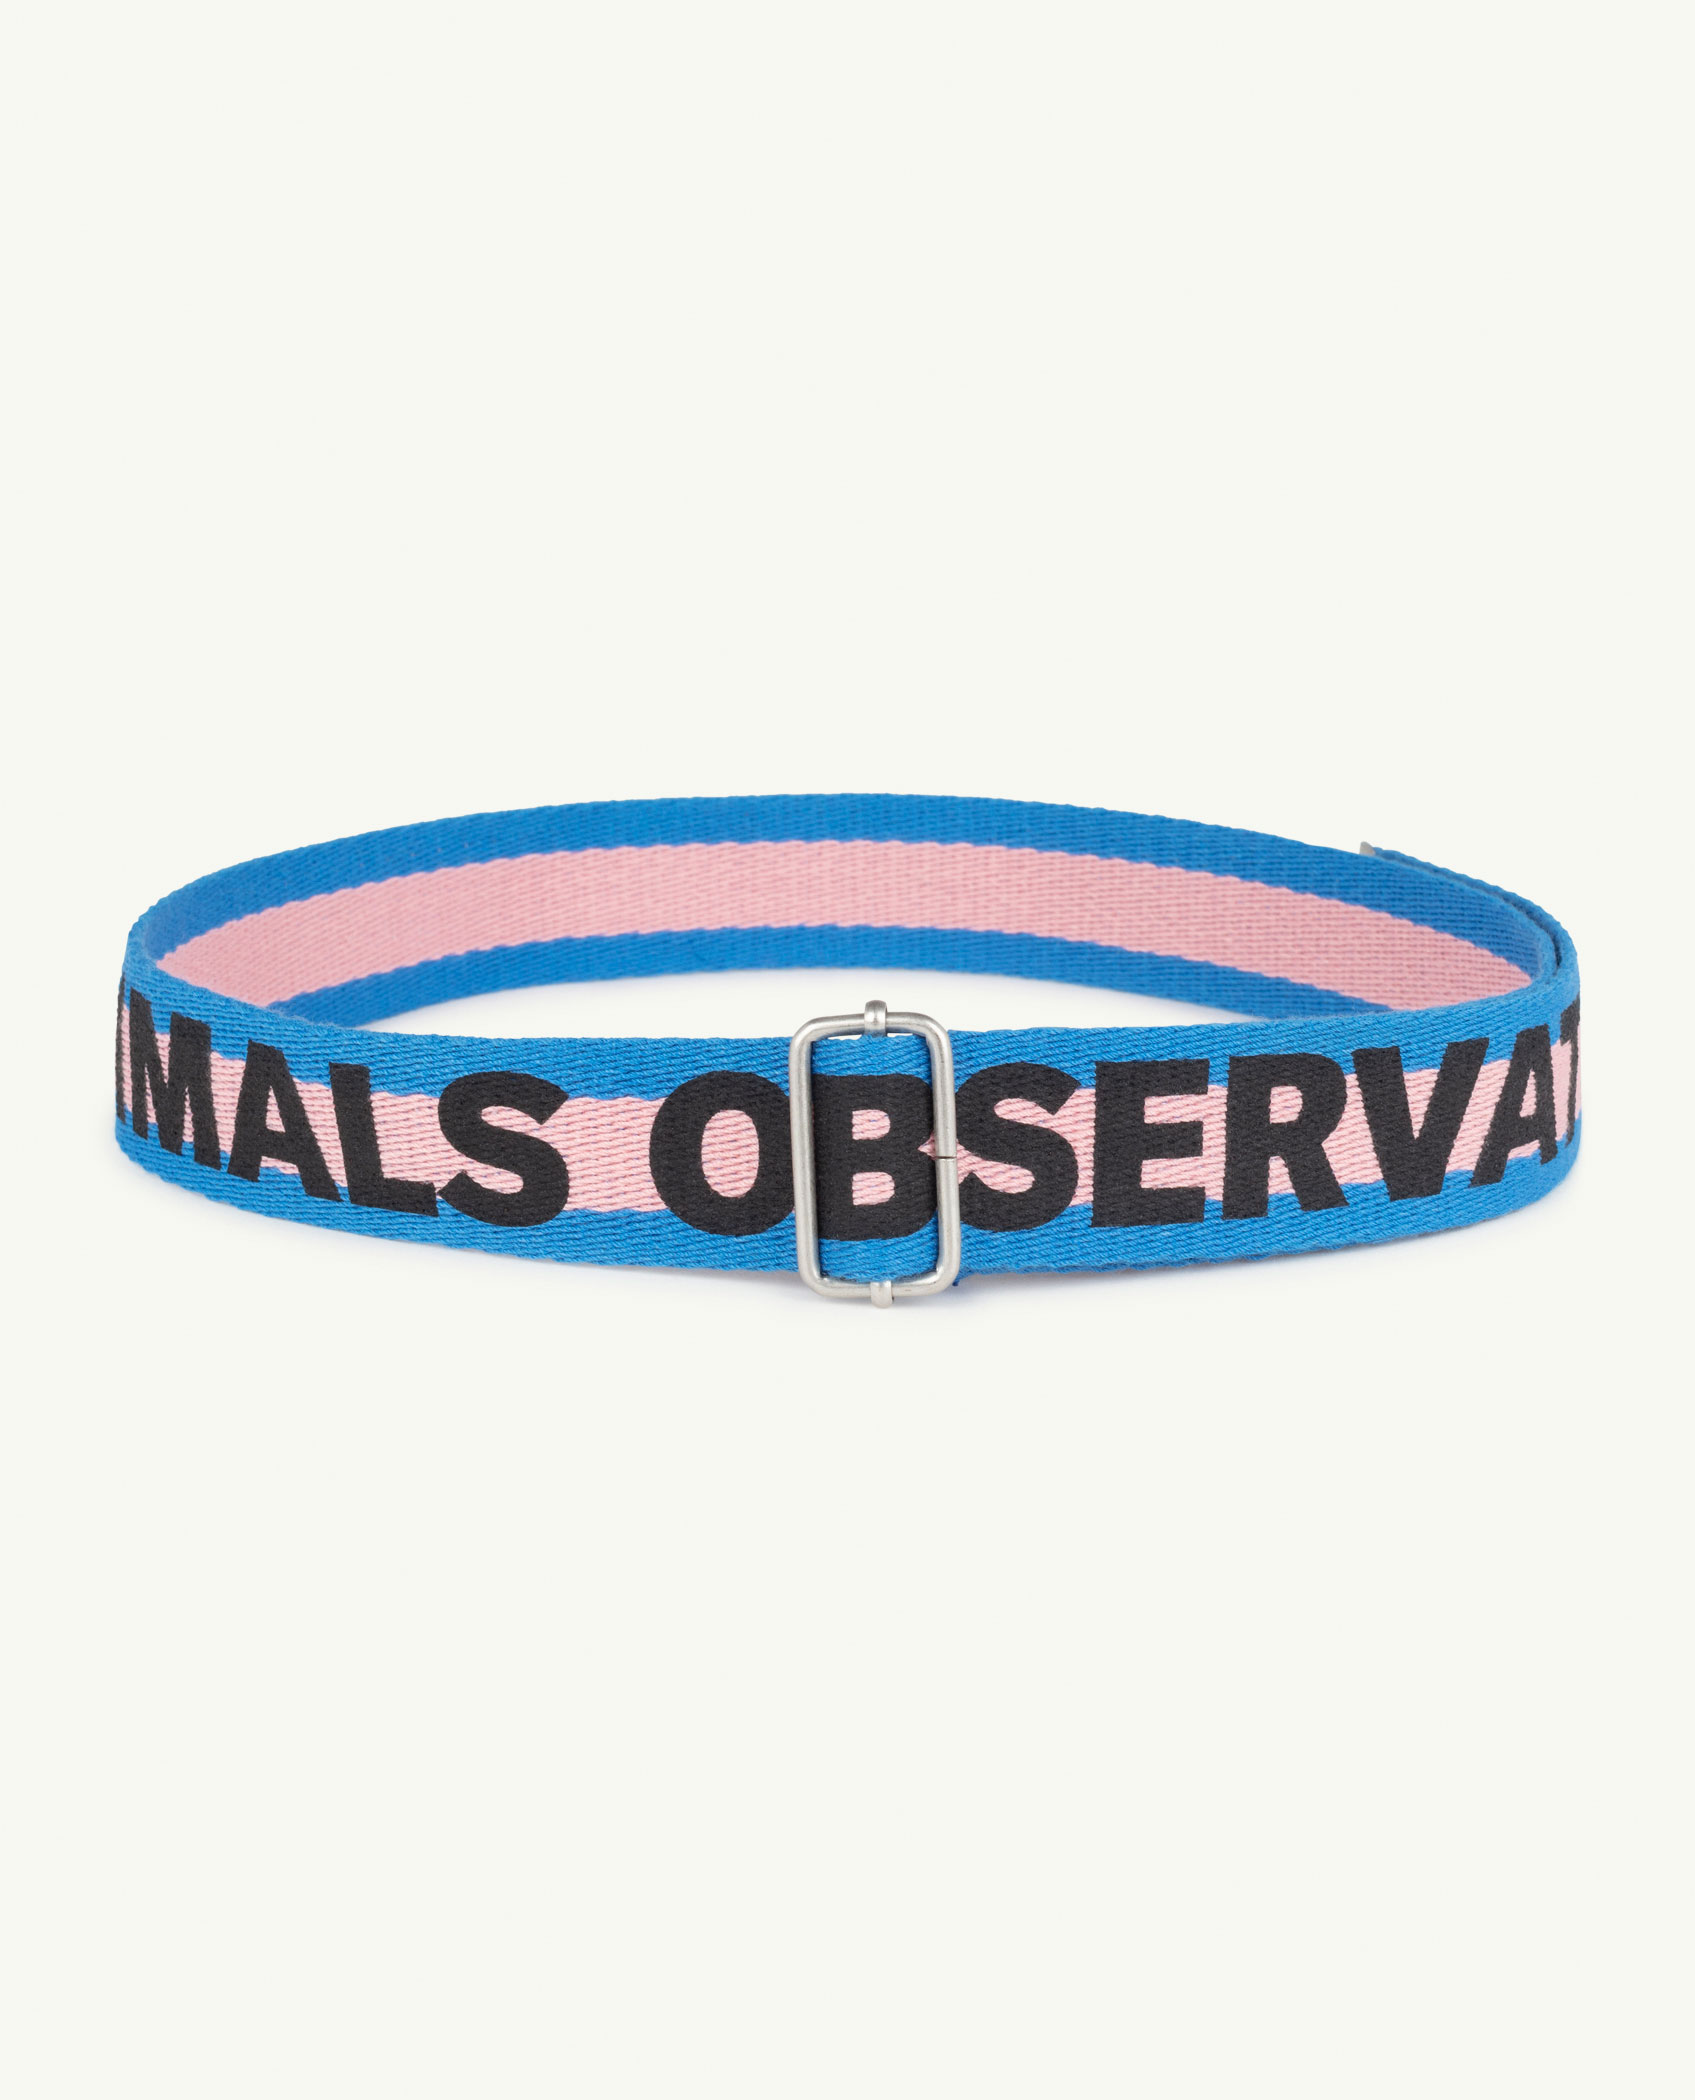 the animals observatory stripes lizard belt pink the animals